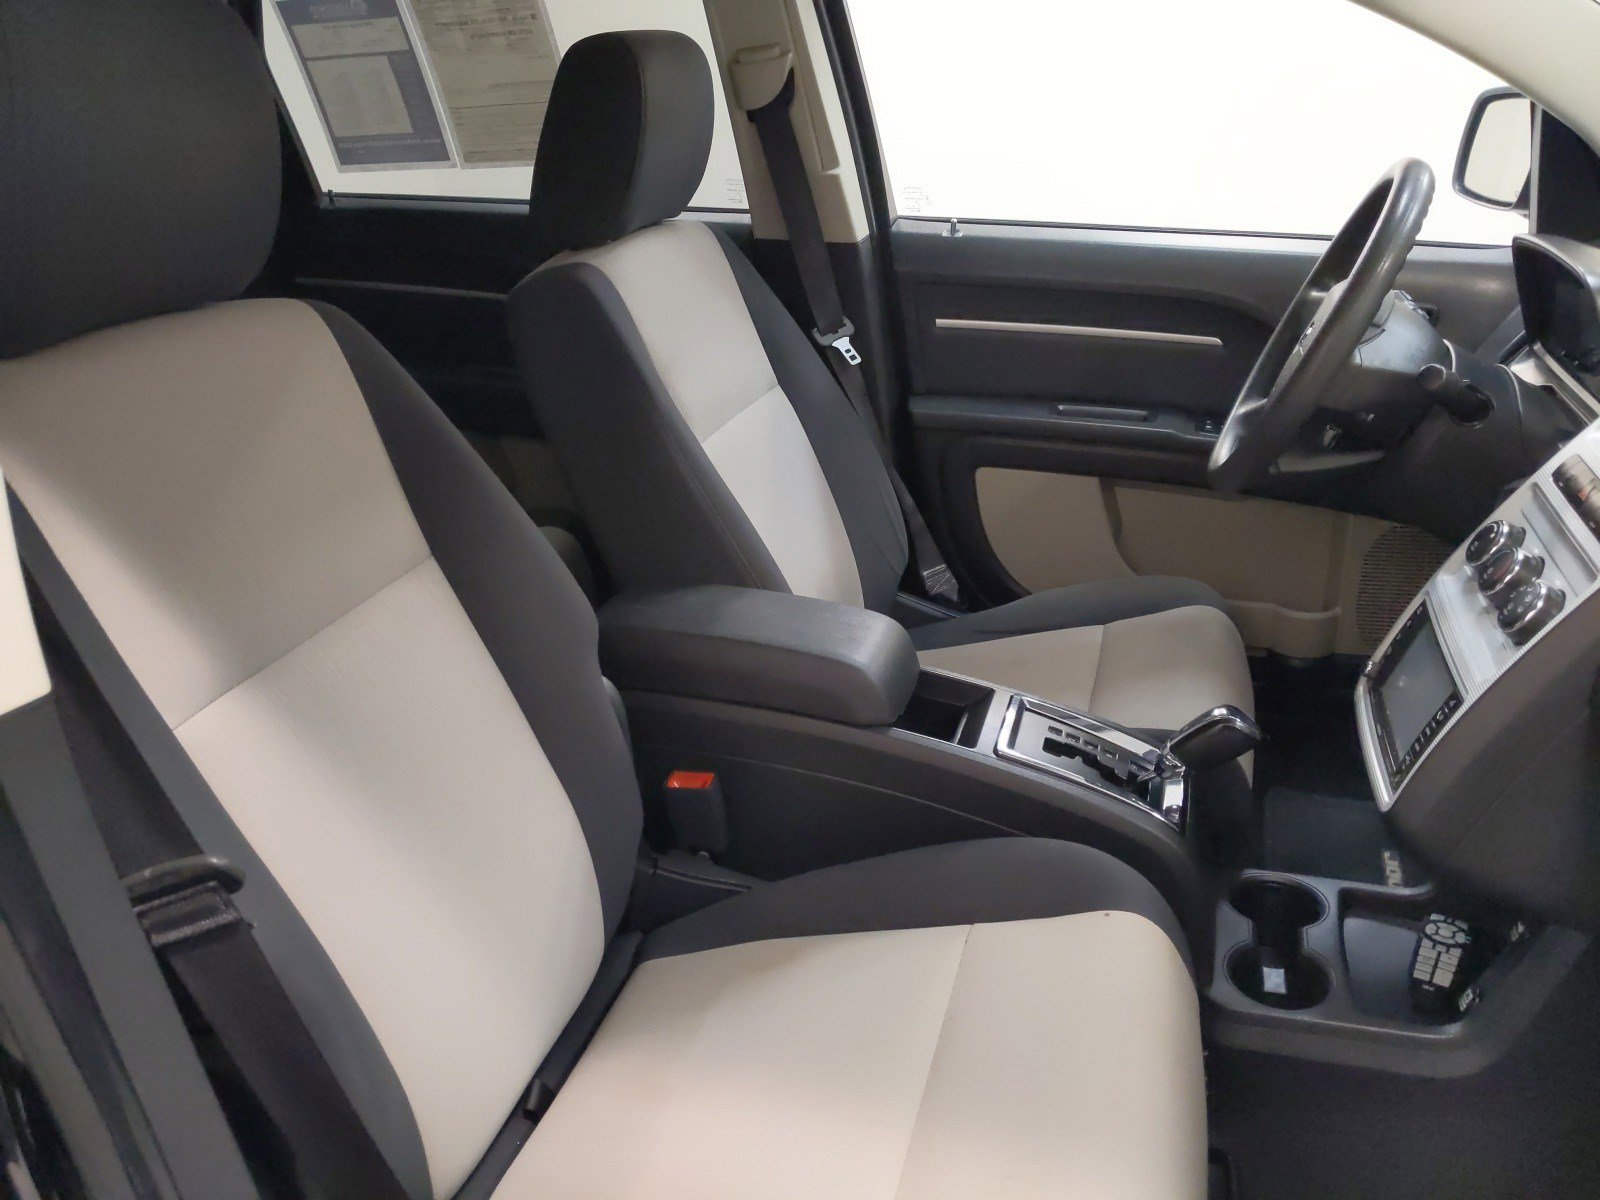 Used 2009 Dodge Journey SXT Sport Utility for sale in Grand Island NE